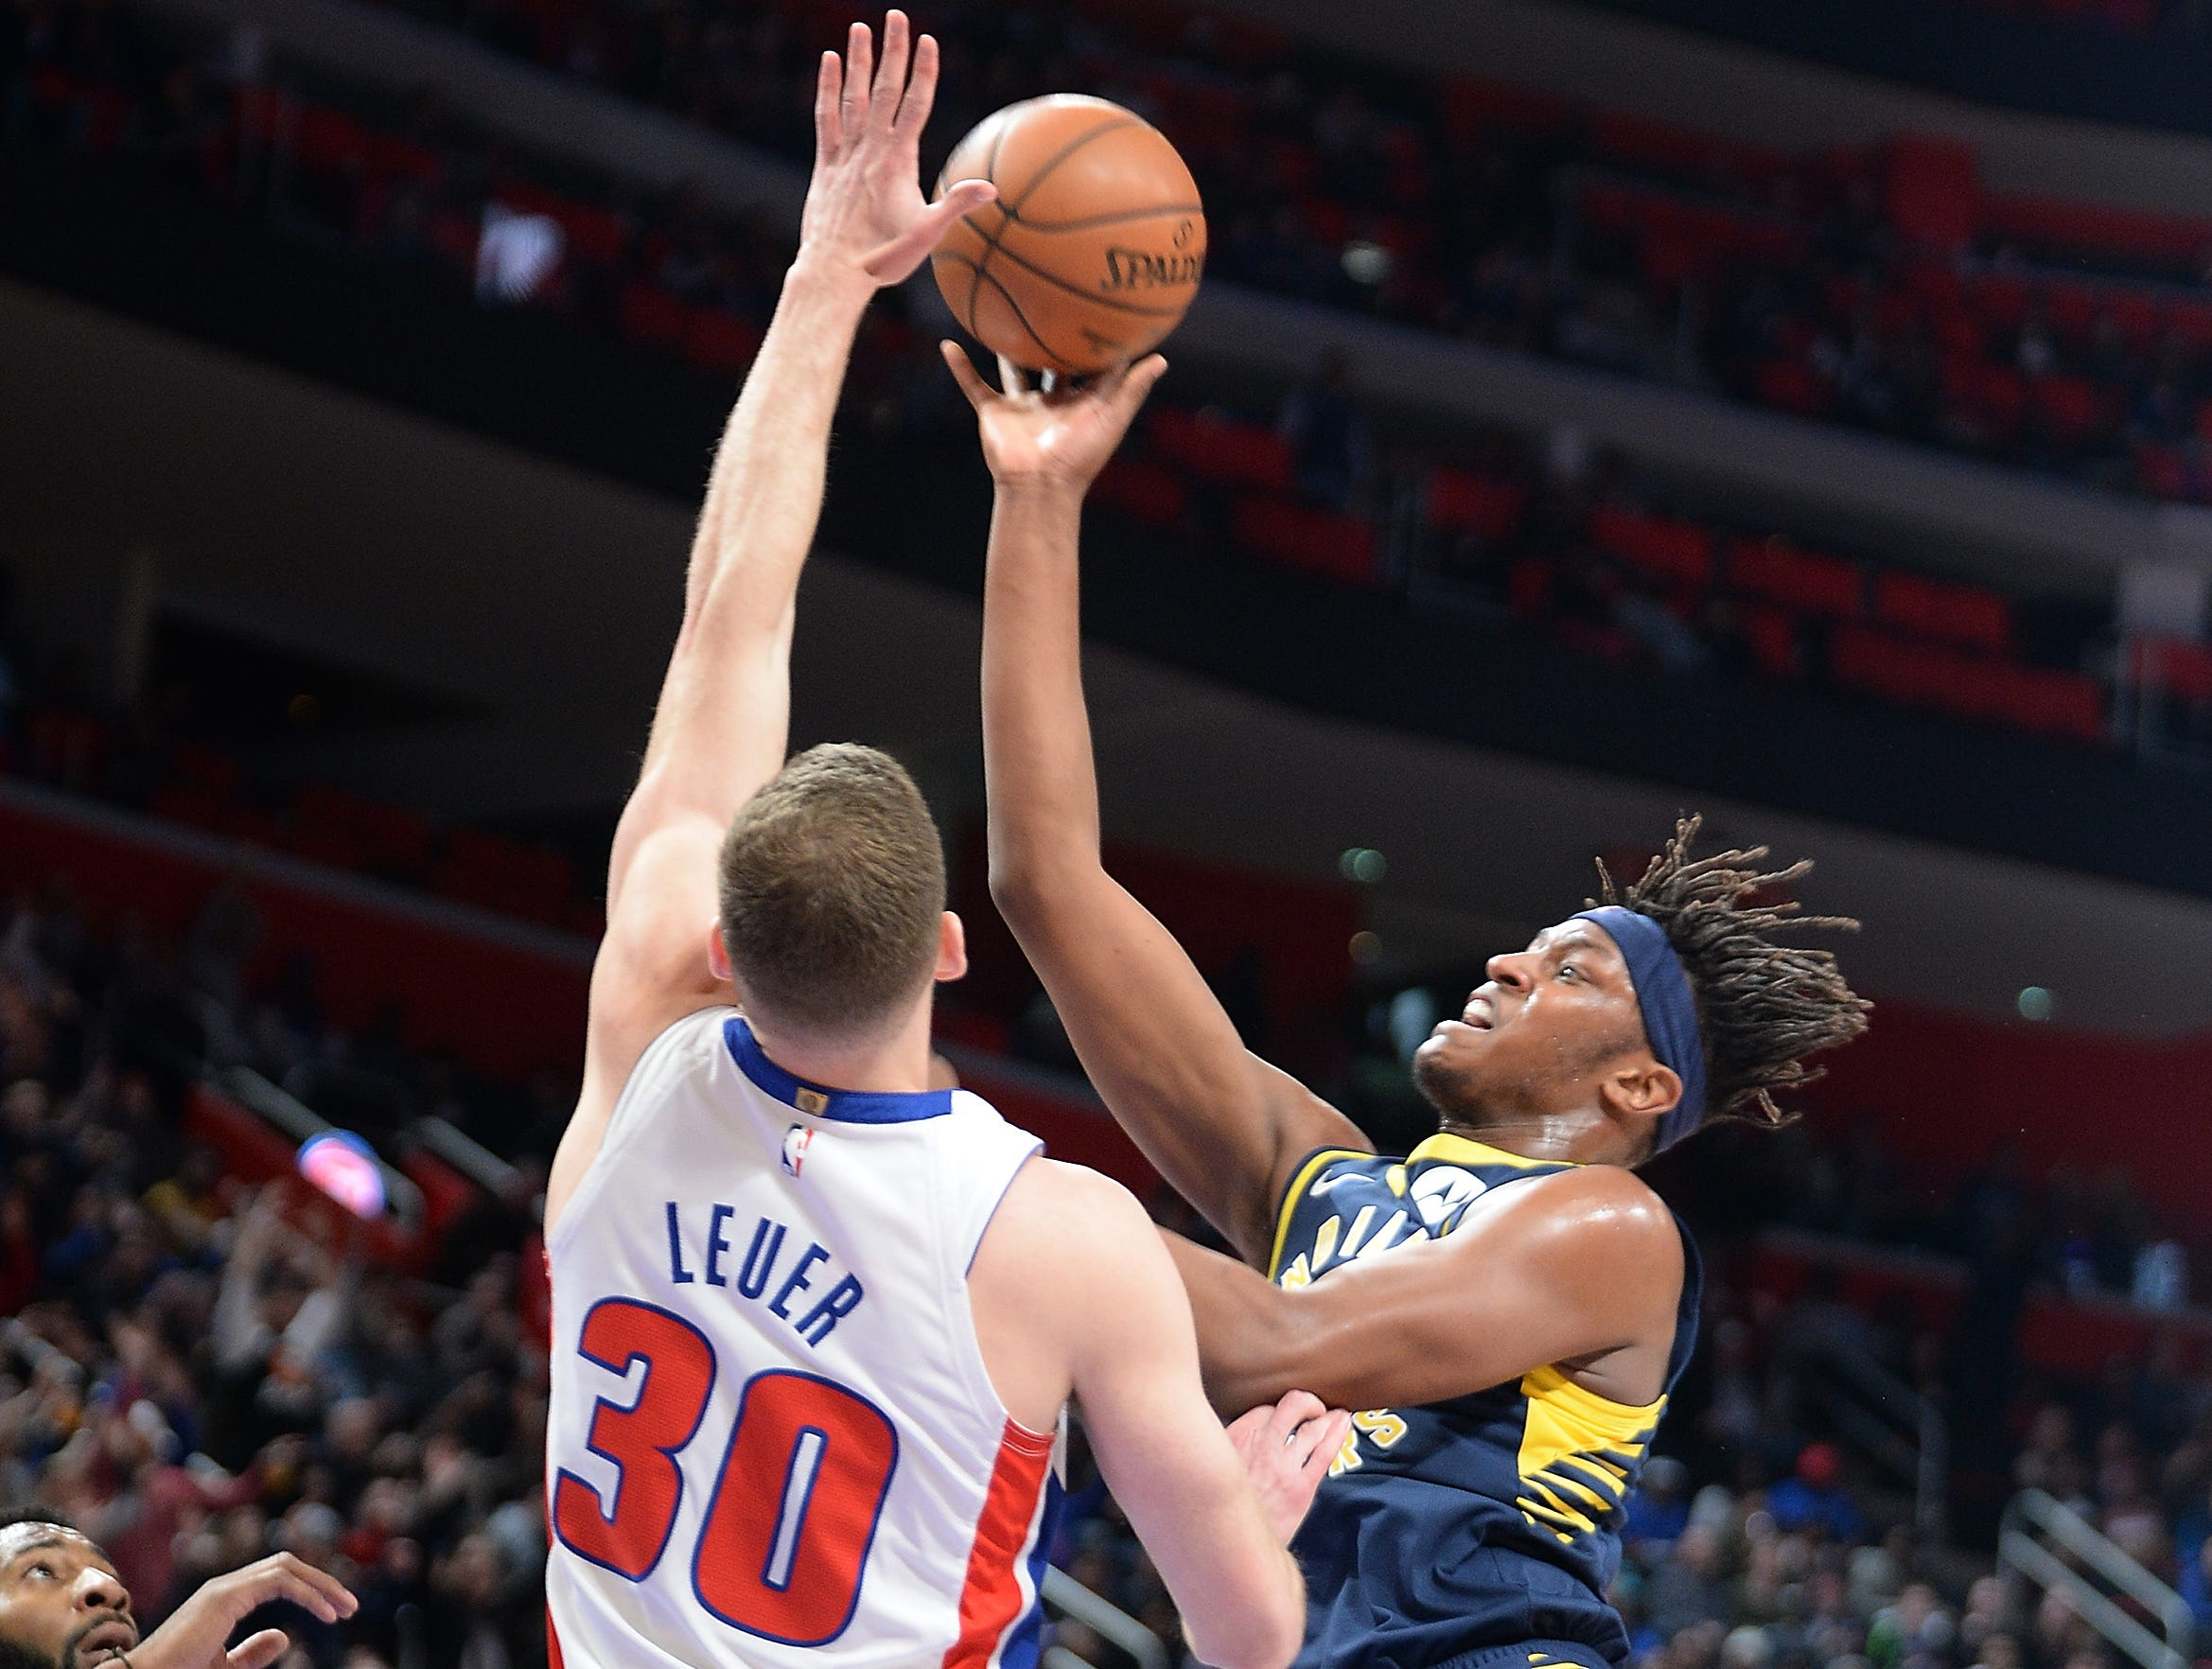 Pacers' Myles Turner scores over Pistons' Jon Leuer in the fourth quarter.